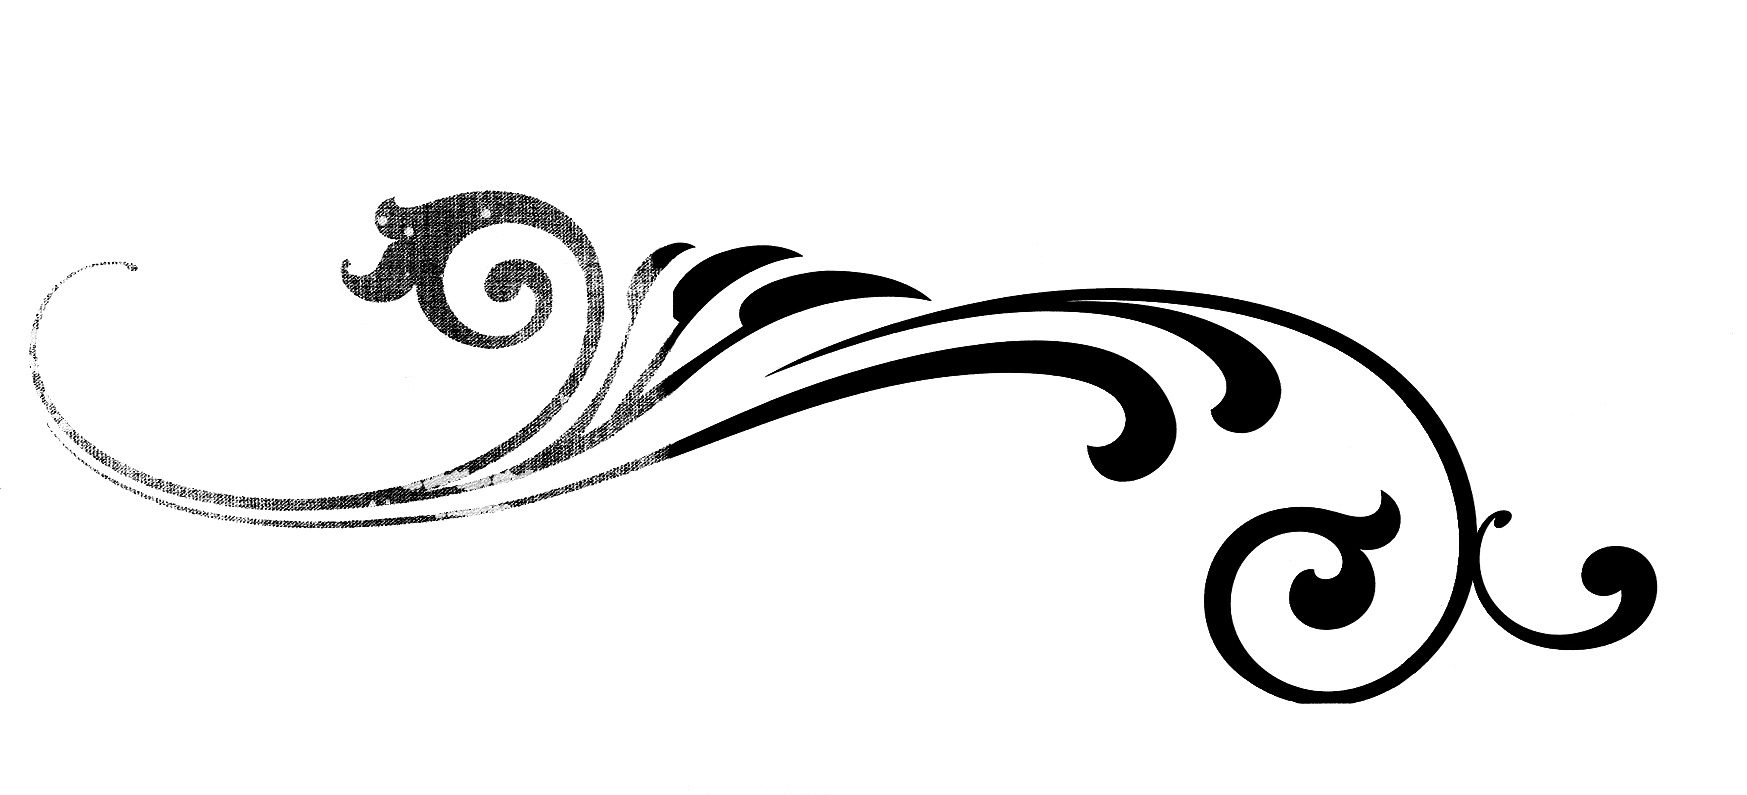 Calligraphy Flourish Vector